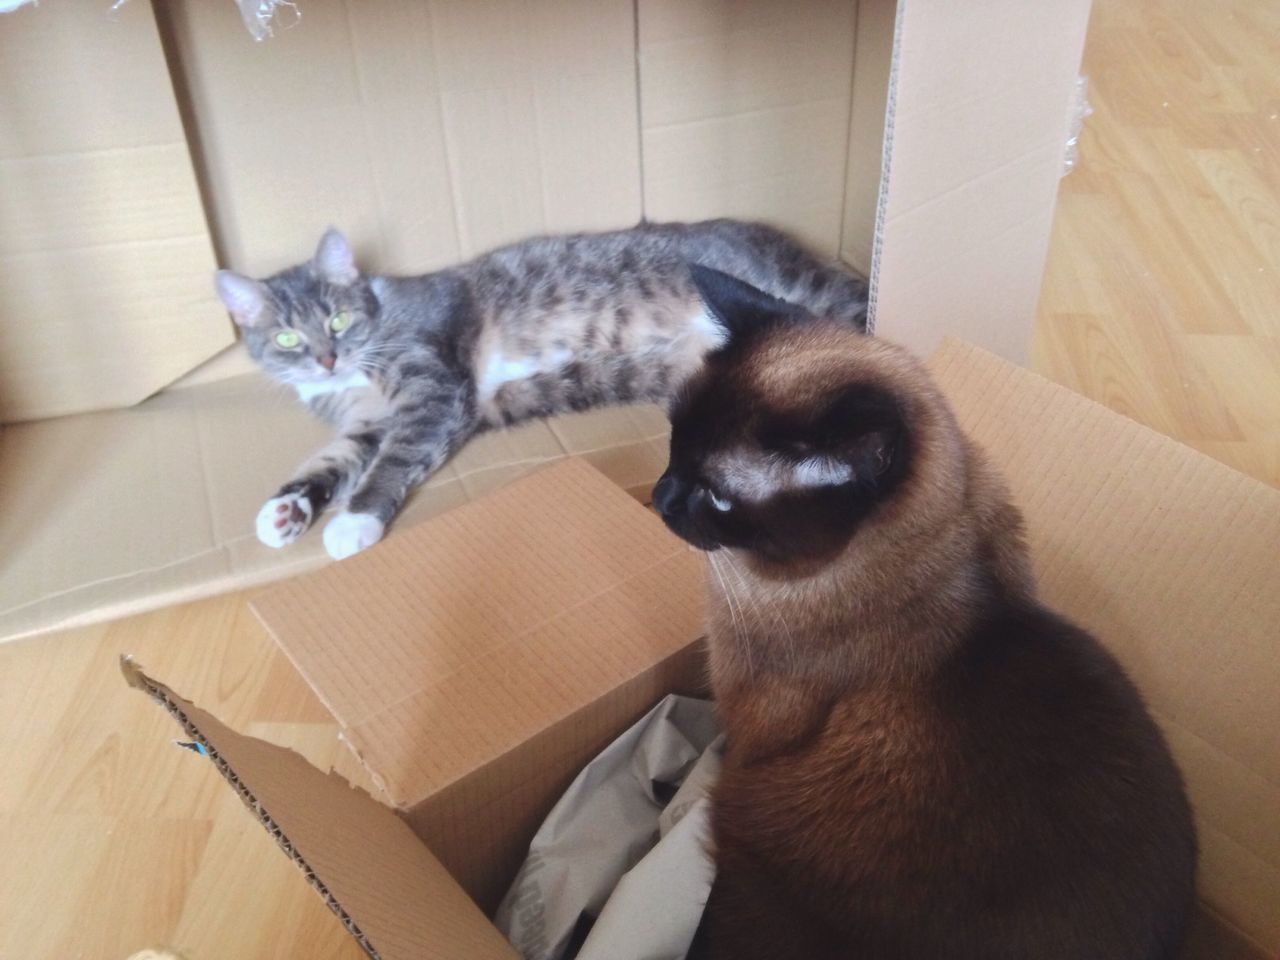 Domestic Cat Pets Feline Mammal Domestic Animals Cat Cardboard Box Animal Themes Indoors  Box - Container One Animal Sitting Relaxation No People Cats Playing Two Cats Siamese Cat